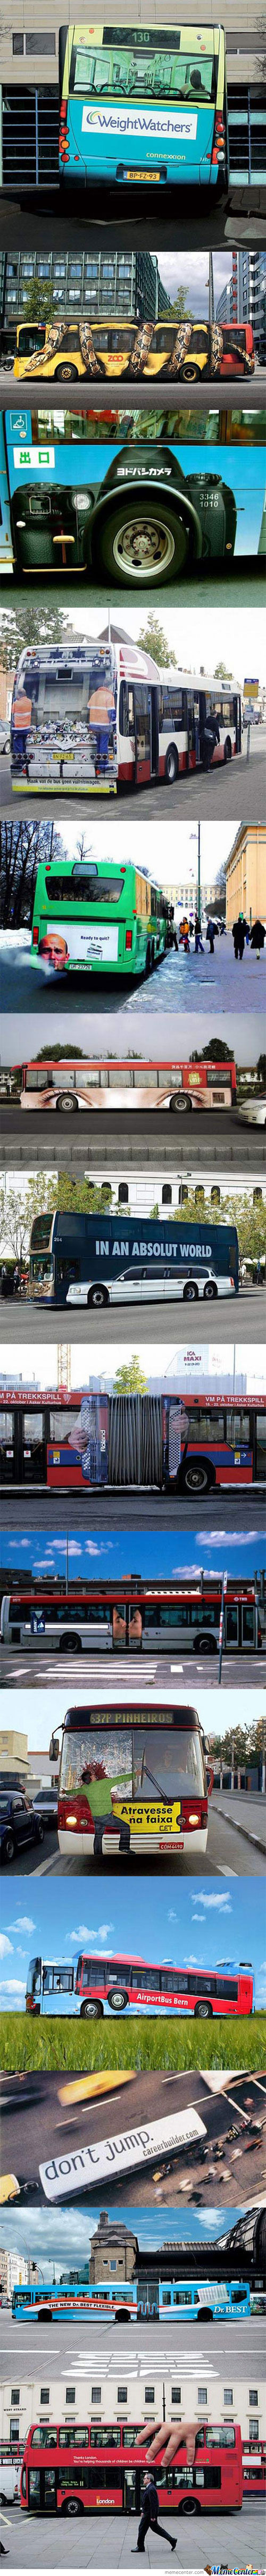 Bus Advertisement